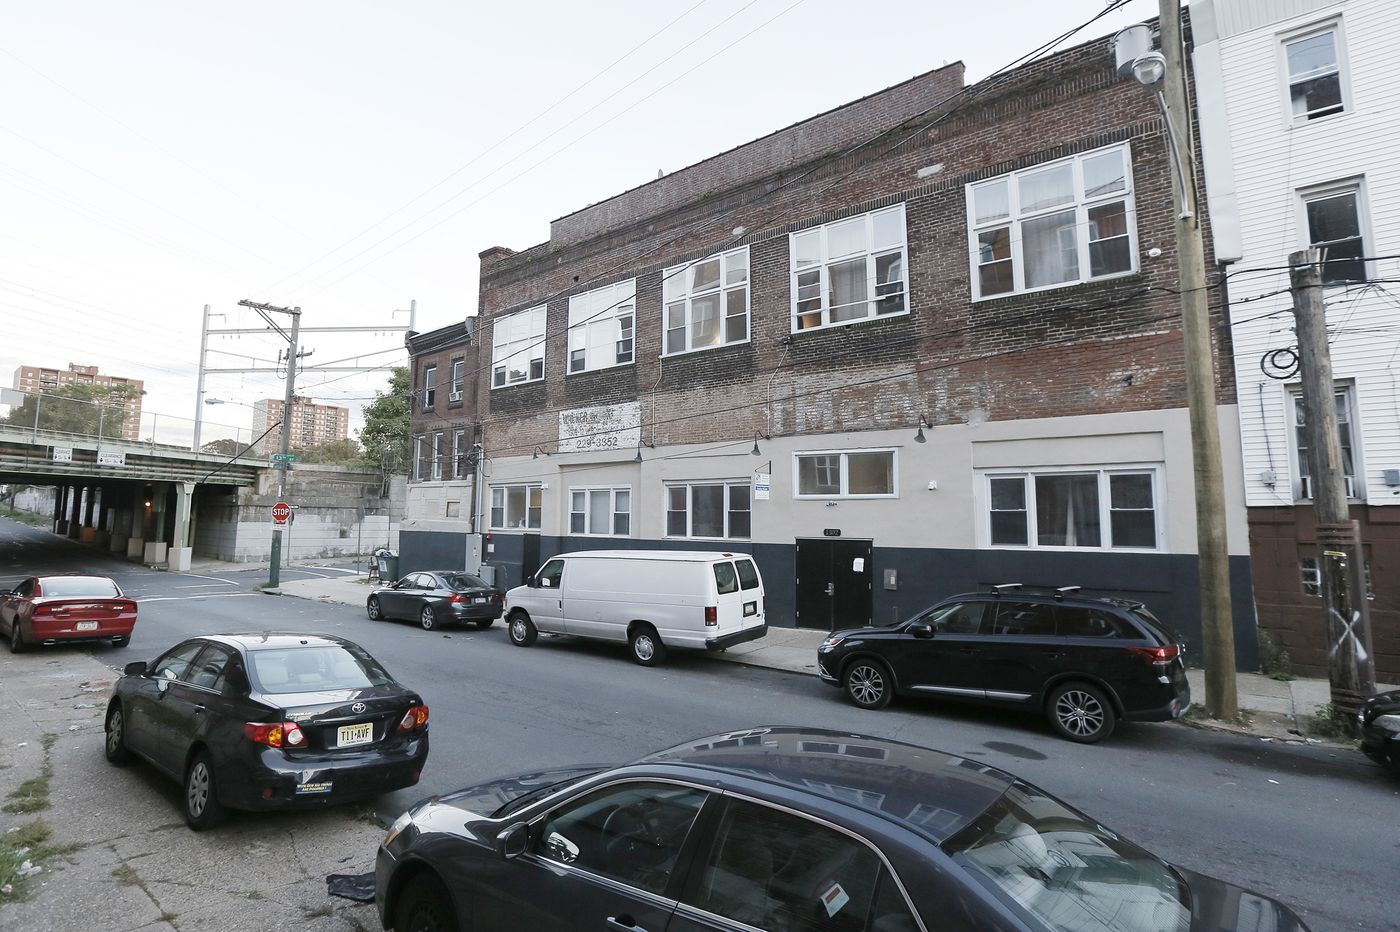 On the brink of eviction, a reprieve: A twist in bizarre Philly L&I case